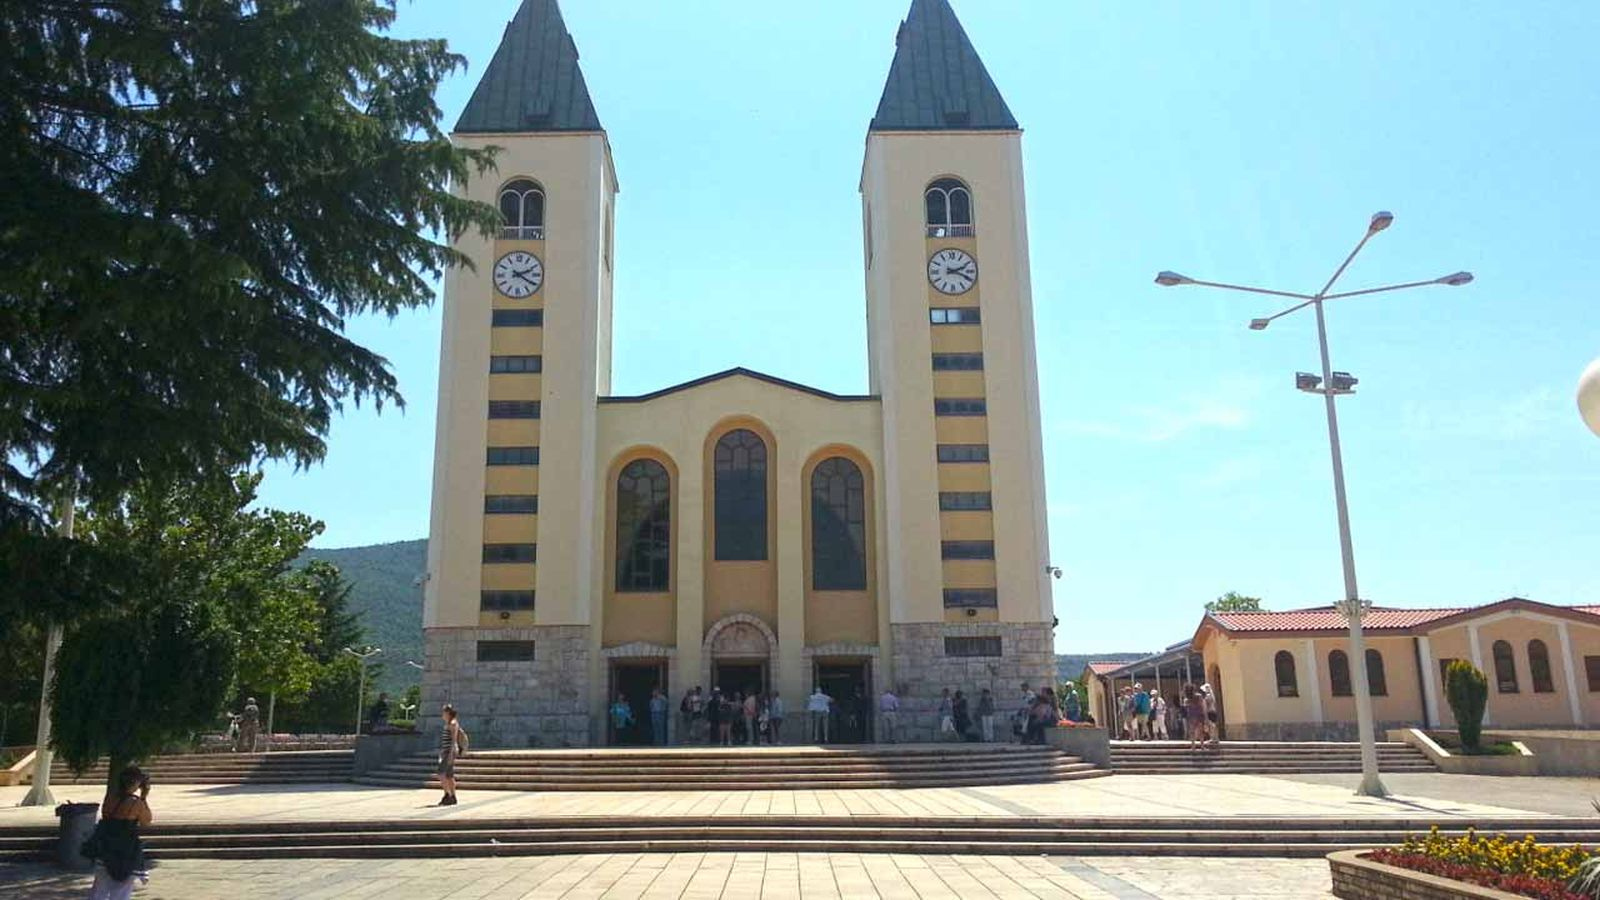 -images-excursions-clash-of-cultures-4-a-medjugorje-church.jpg